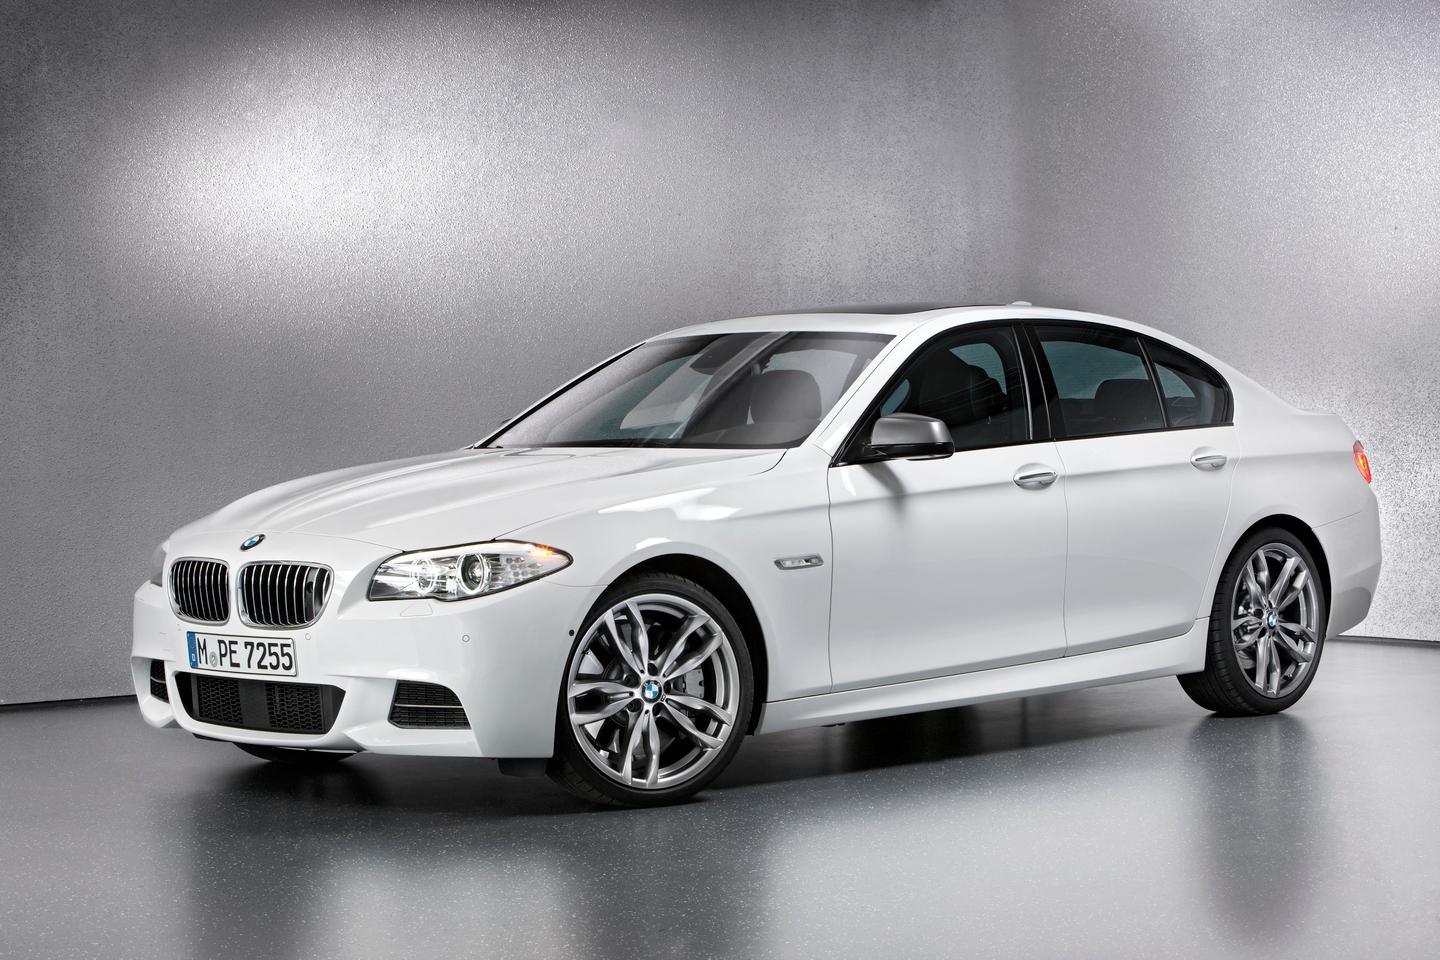 BMW's amazing new 381 bhp 740 Nm 45 mpg triple turbo diesel